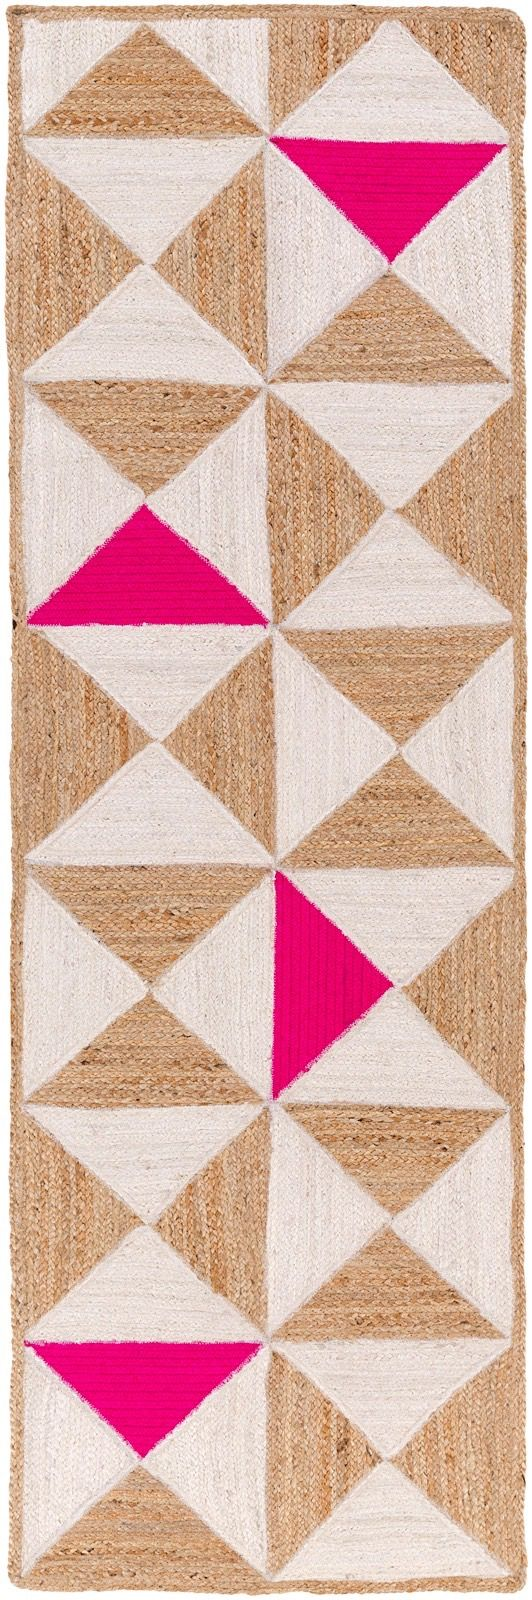 surya molino contemporary area rug collection